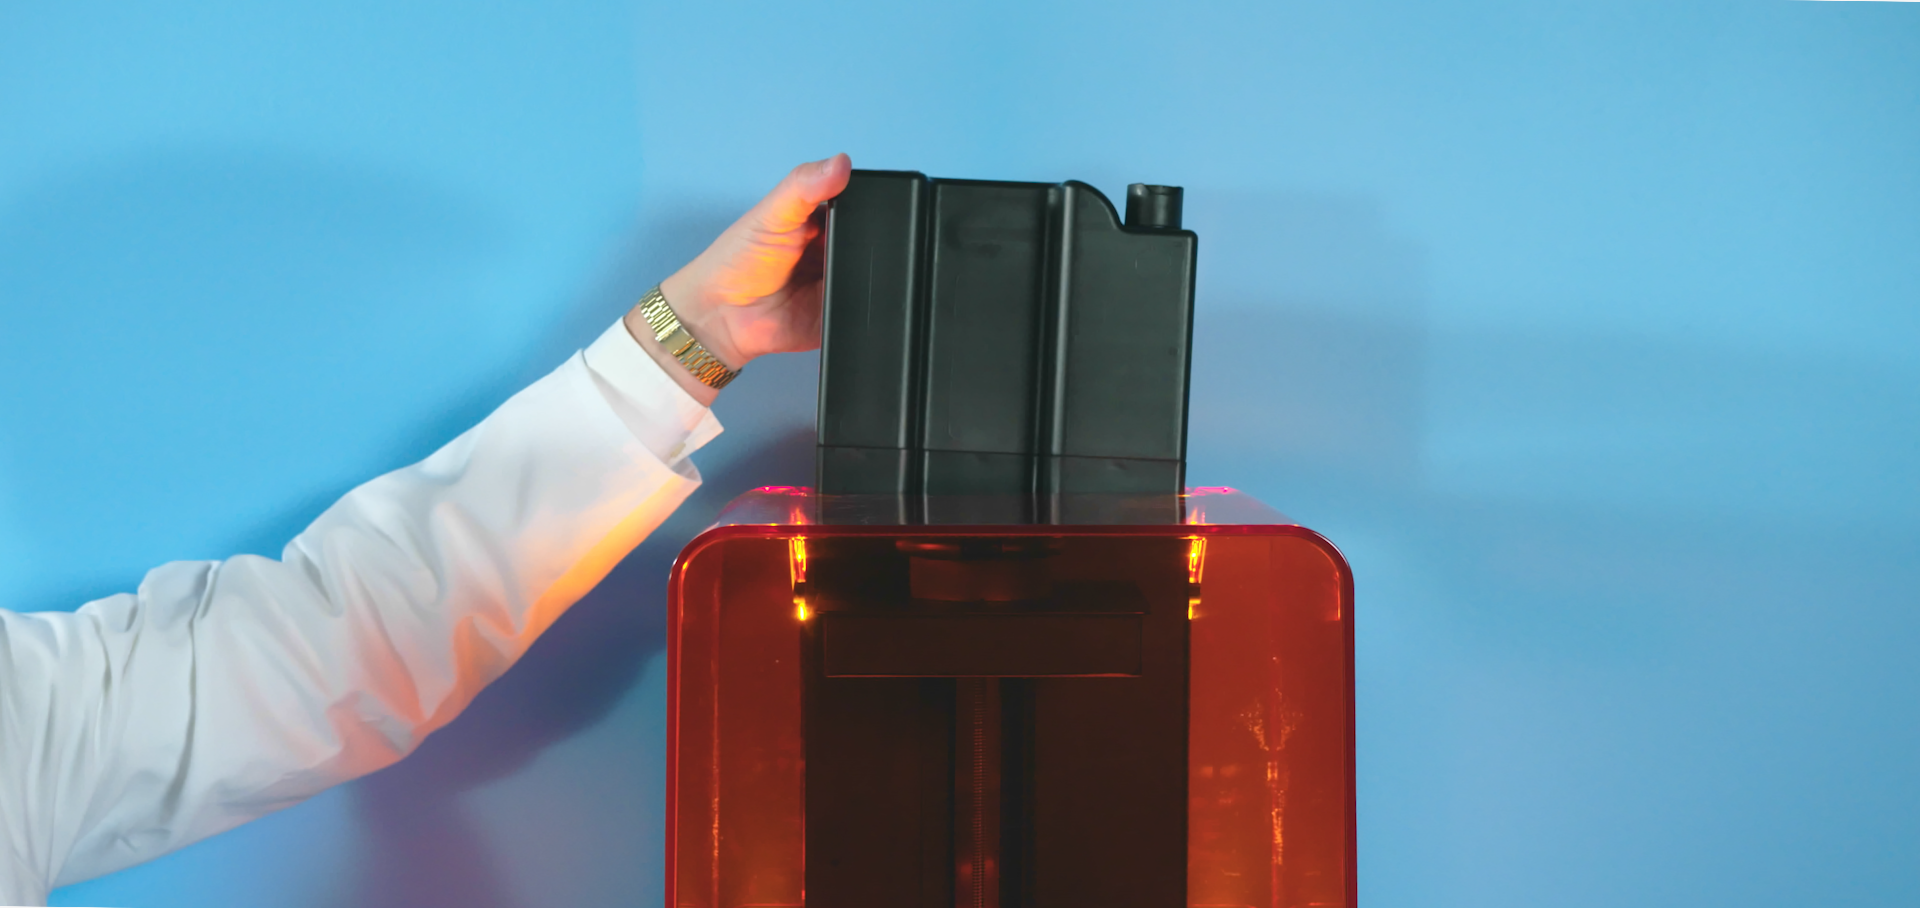 Insert the cartridge into your Formlabs printer to start printing in color.